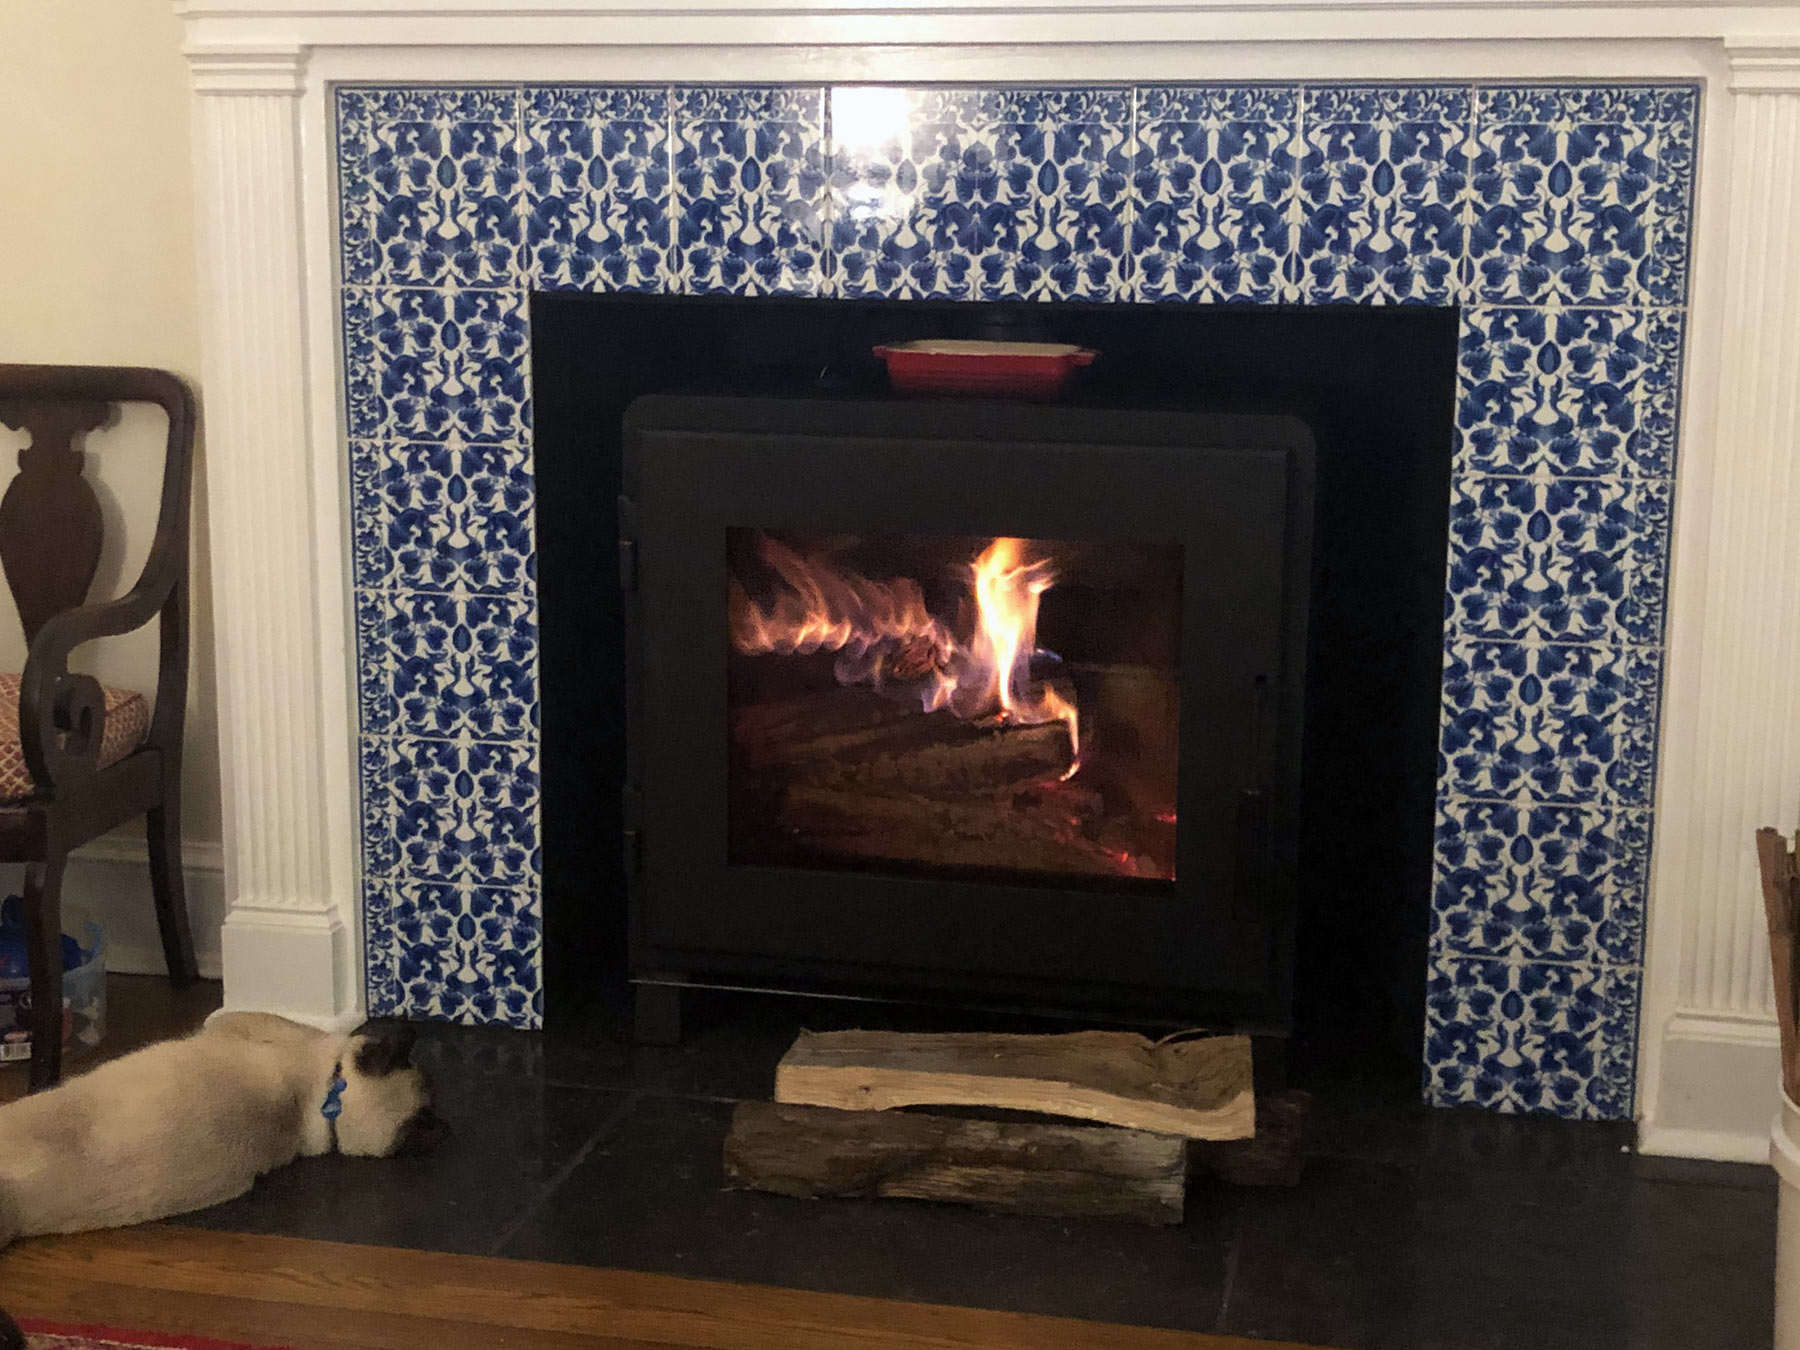 De Morgan fireplace surround with Art Nouveau Ducks and Dragons fireplace, Victorian Blue